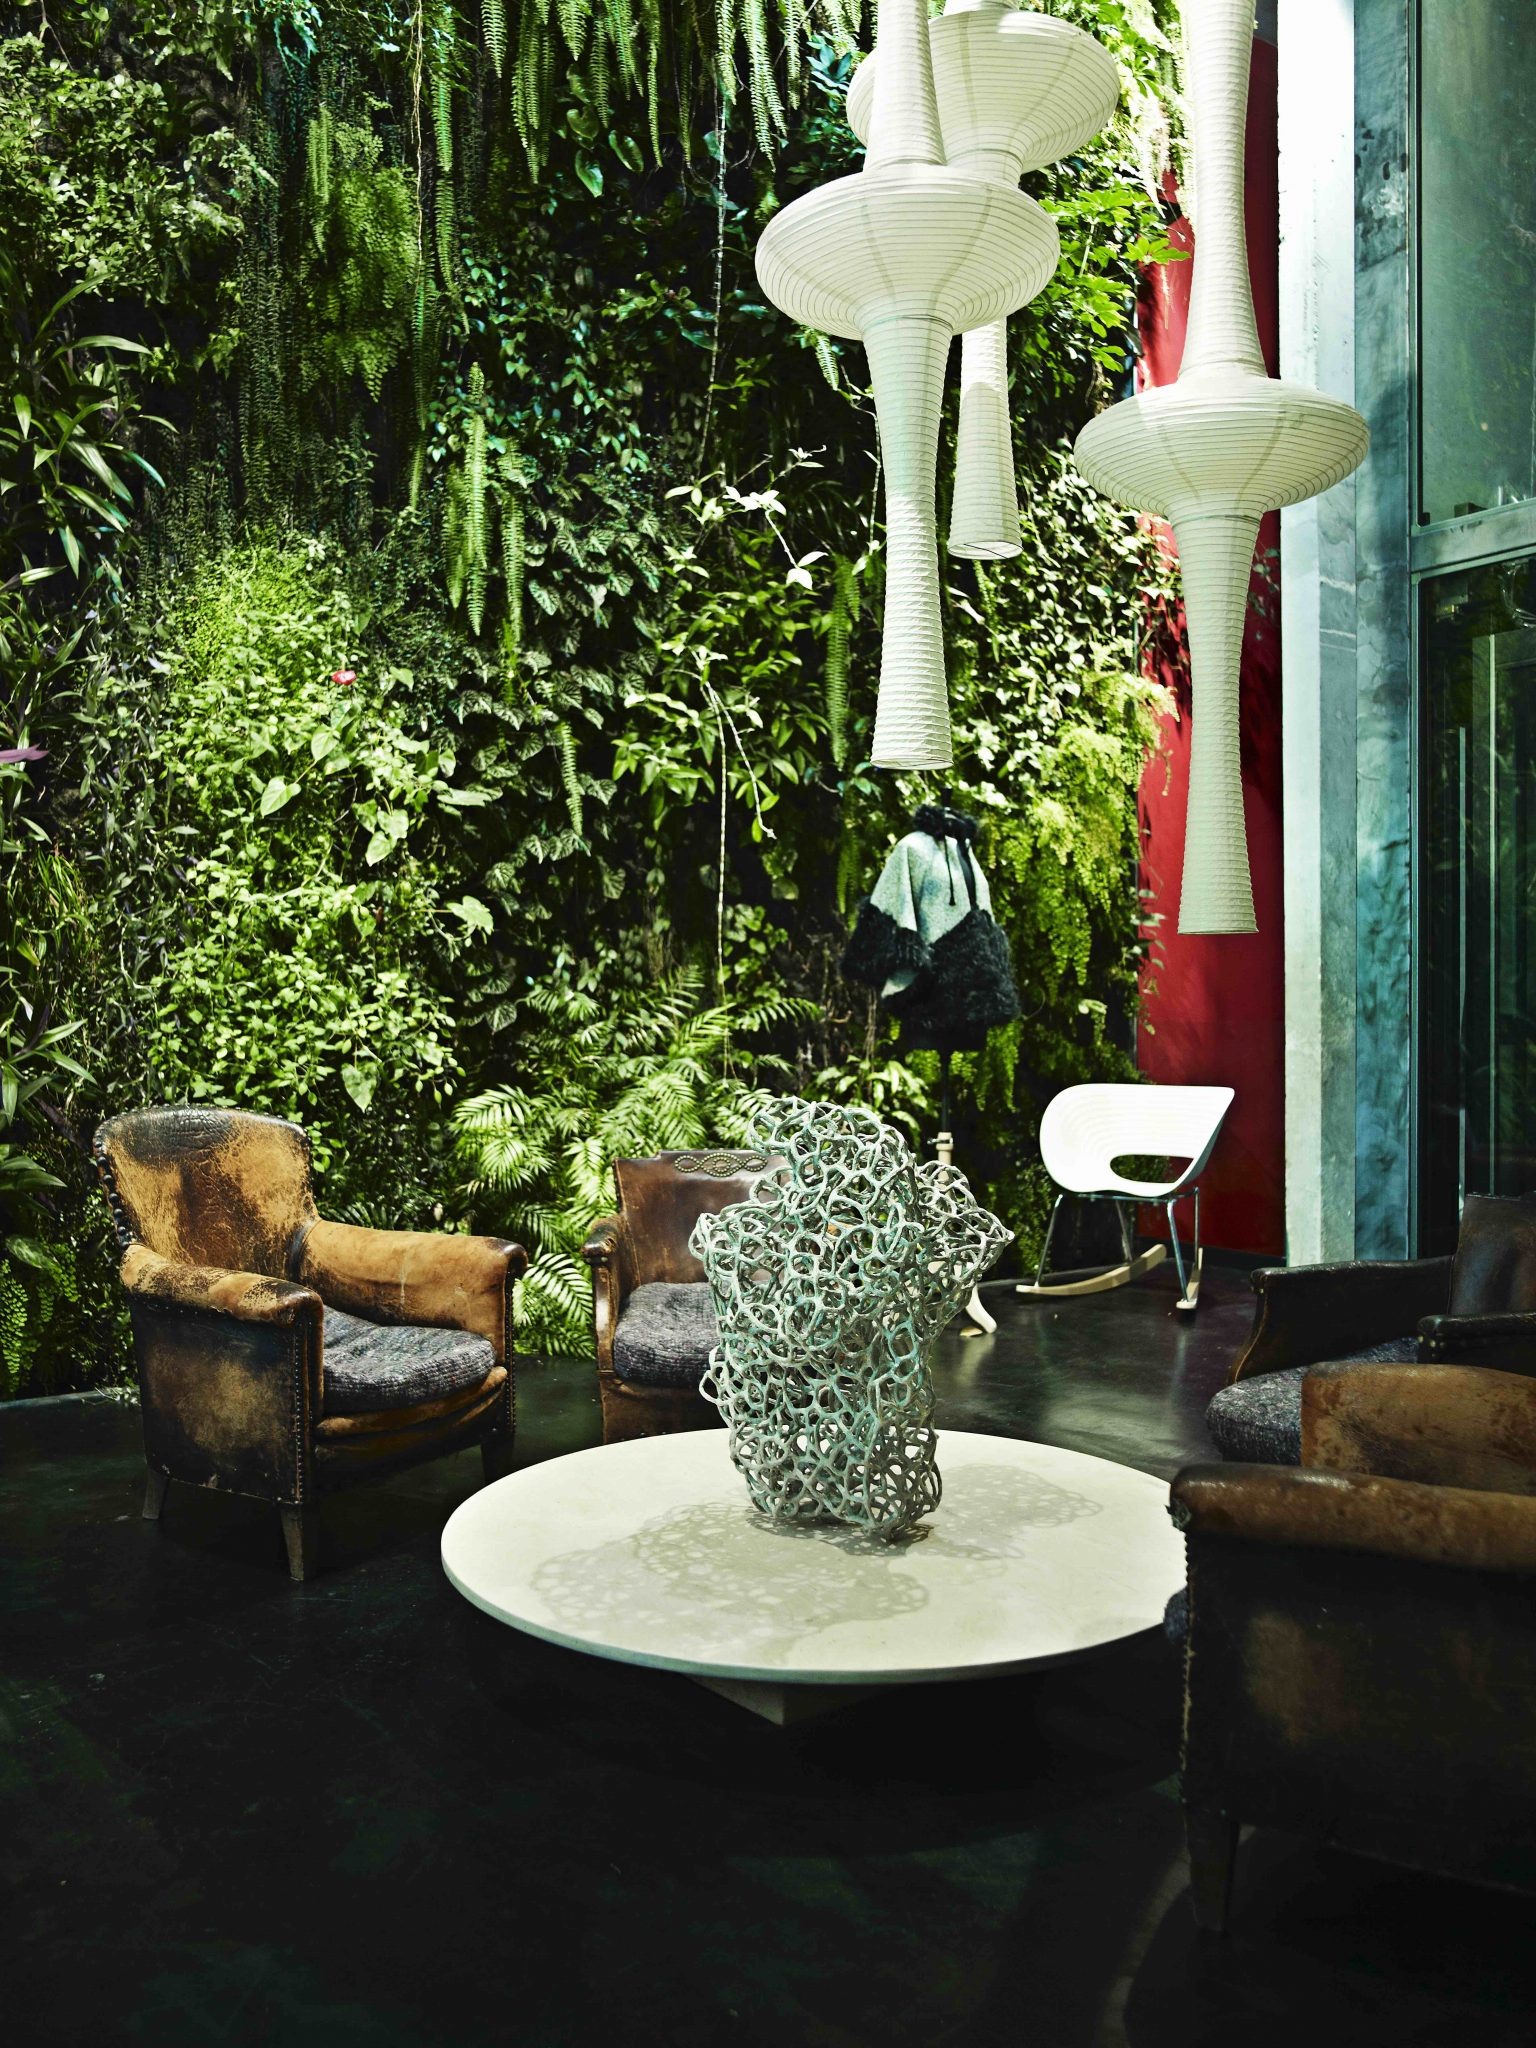 ultimate wonderplants lannoo copyright sisters agency #interieur #planten